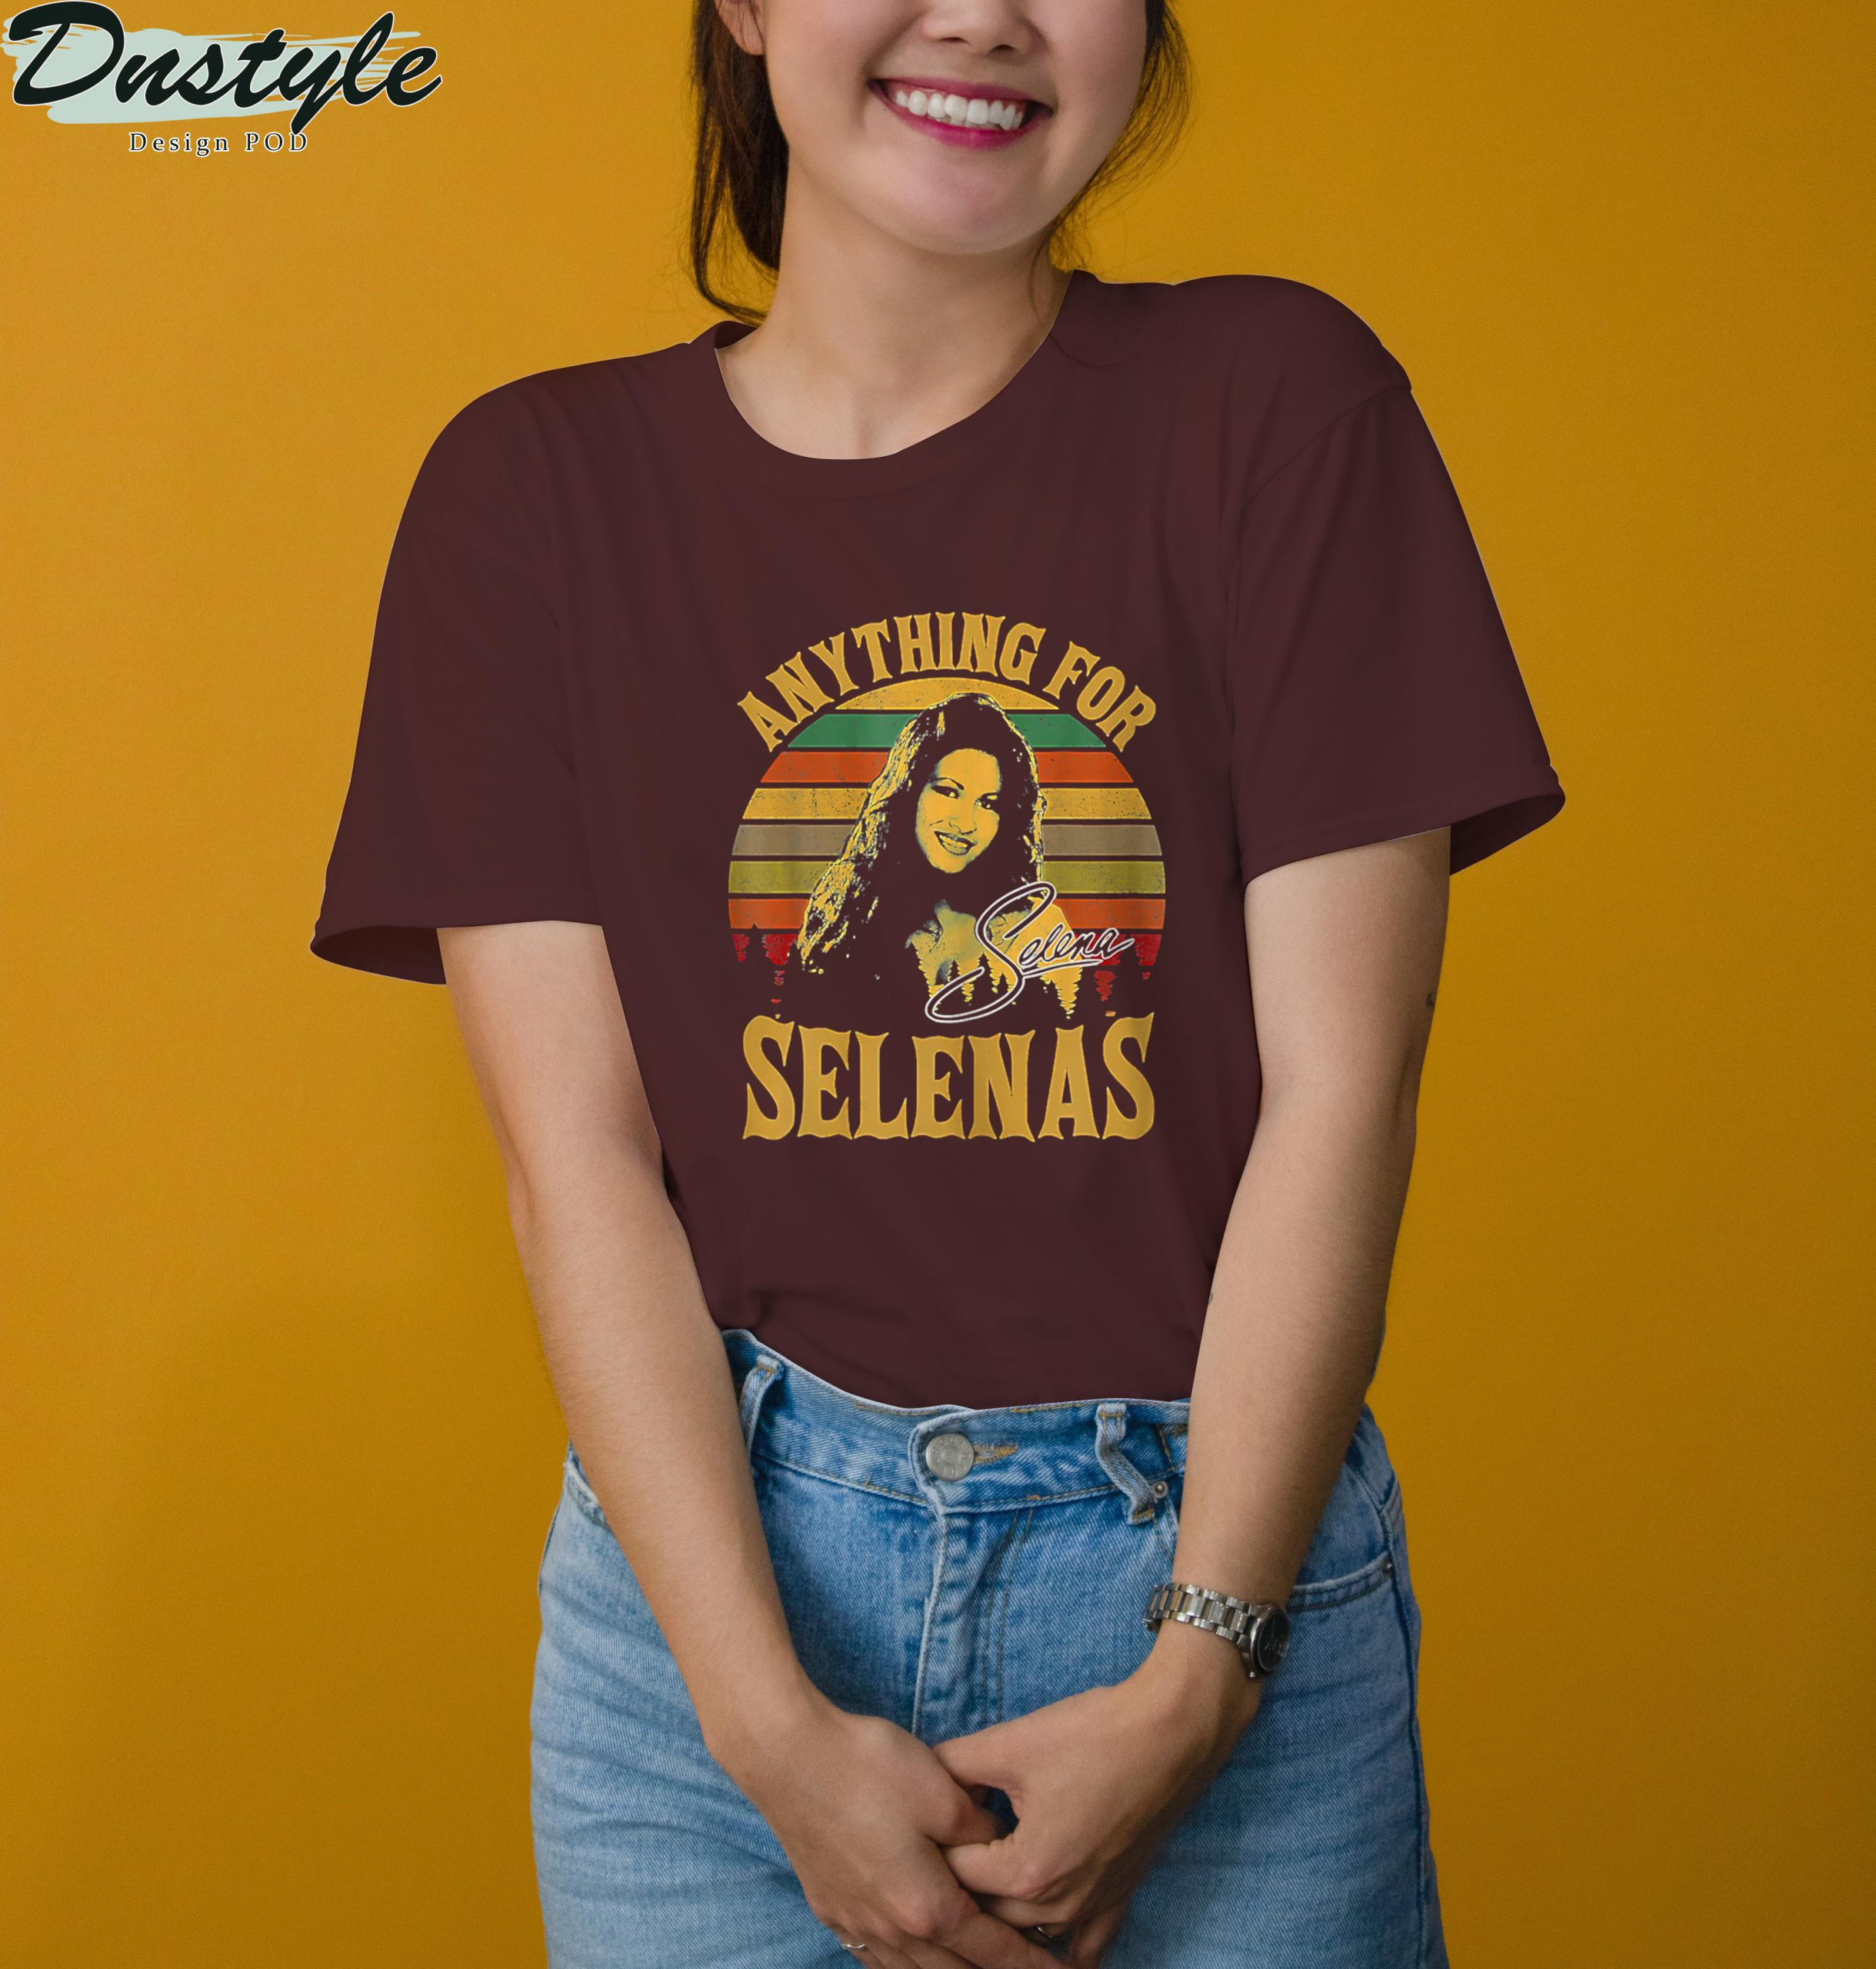 Anything for selenas vintage t-shirt